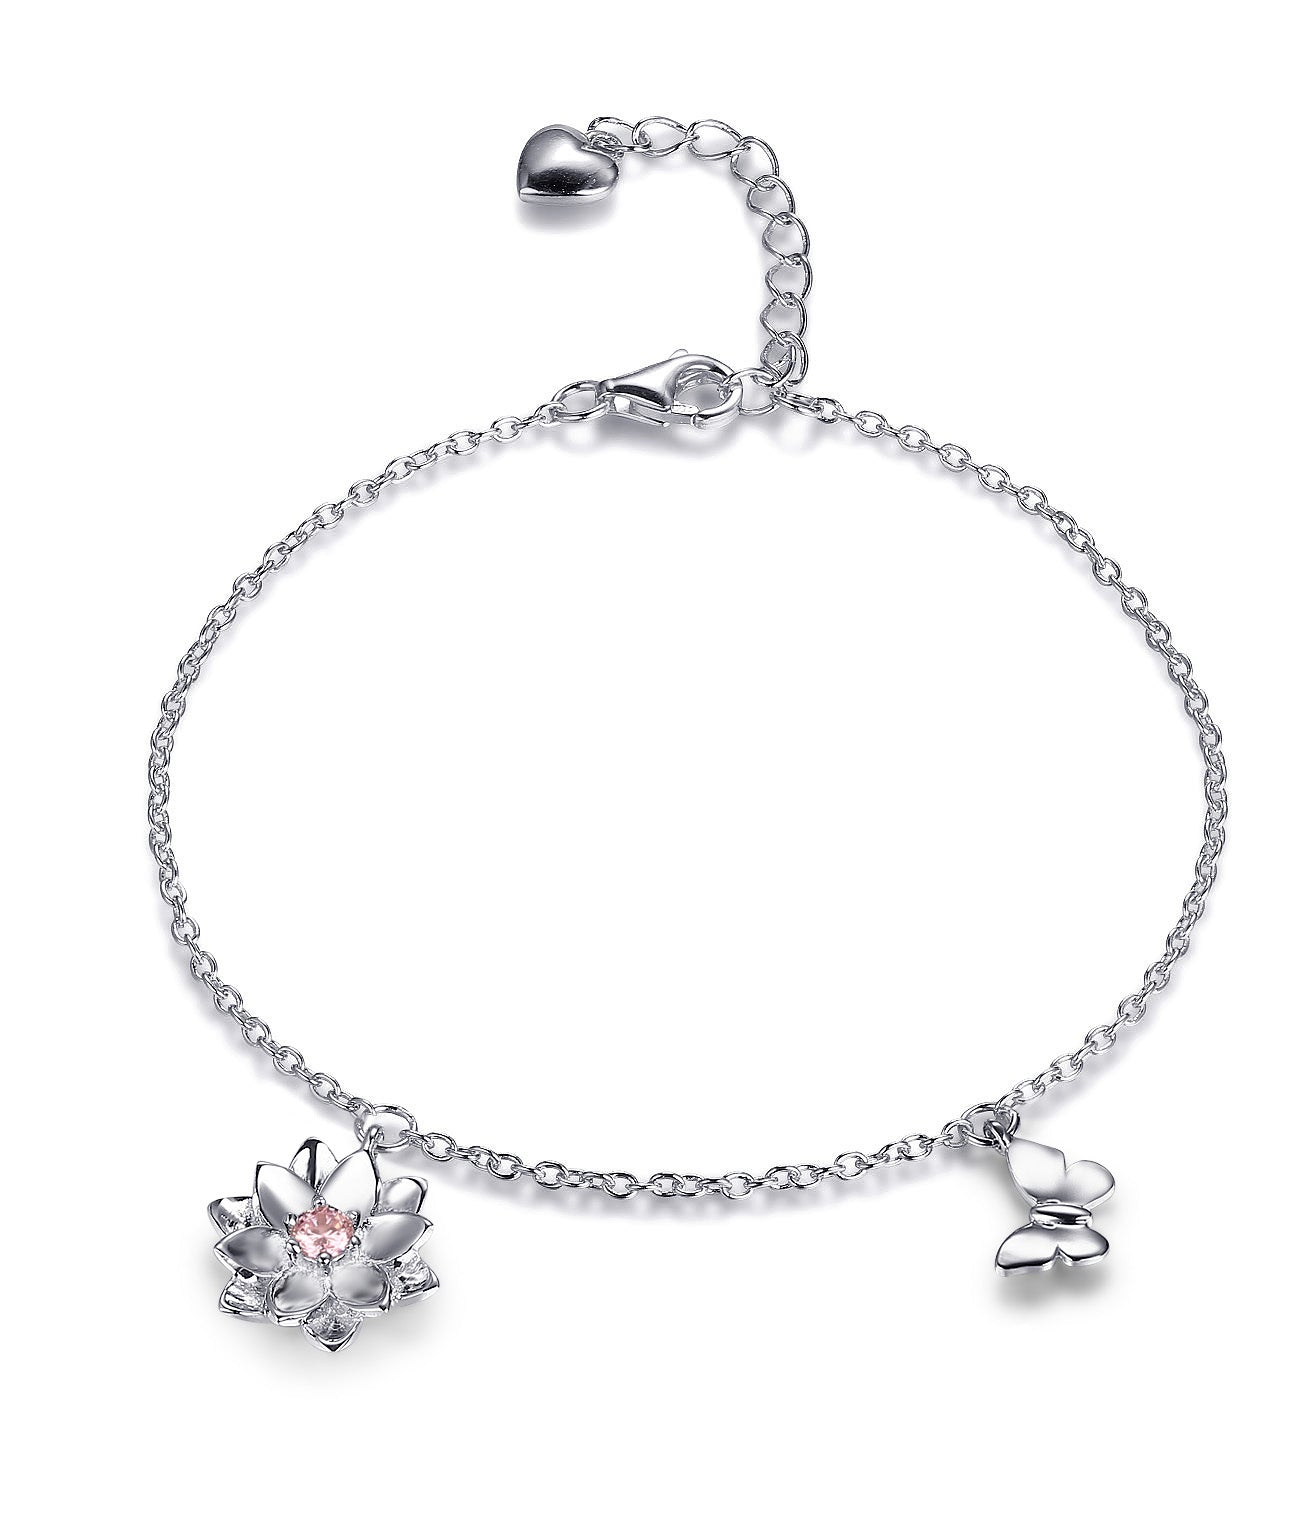 Adriene Lotus Flower Butterfly Bracelet, Yoga Jewelry Gifts, 925 Sterling Silver - Quan Jewelry